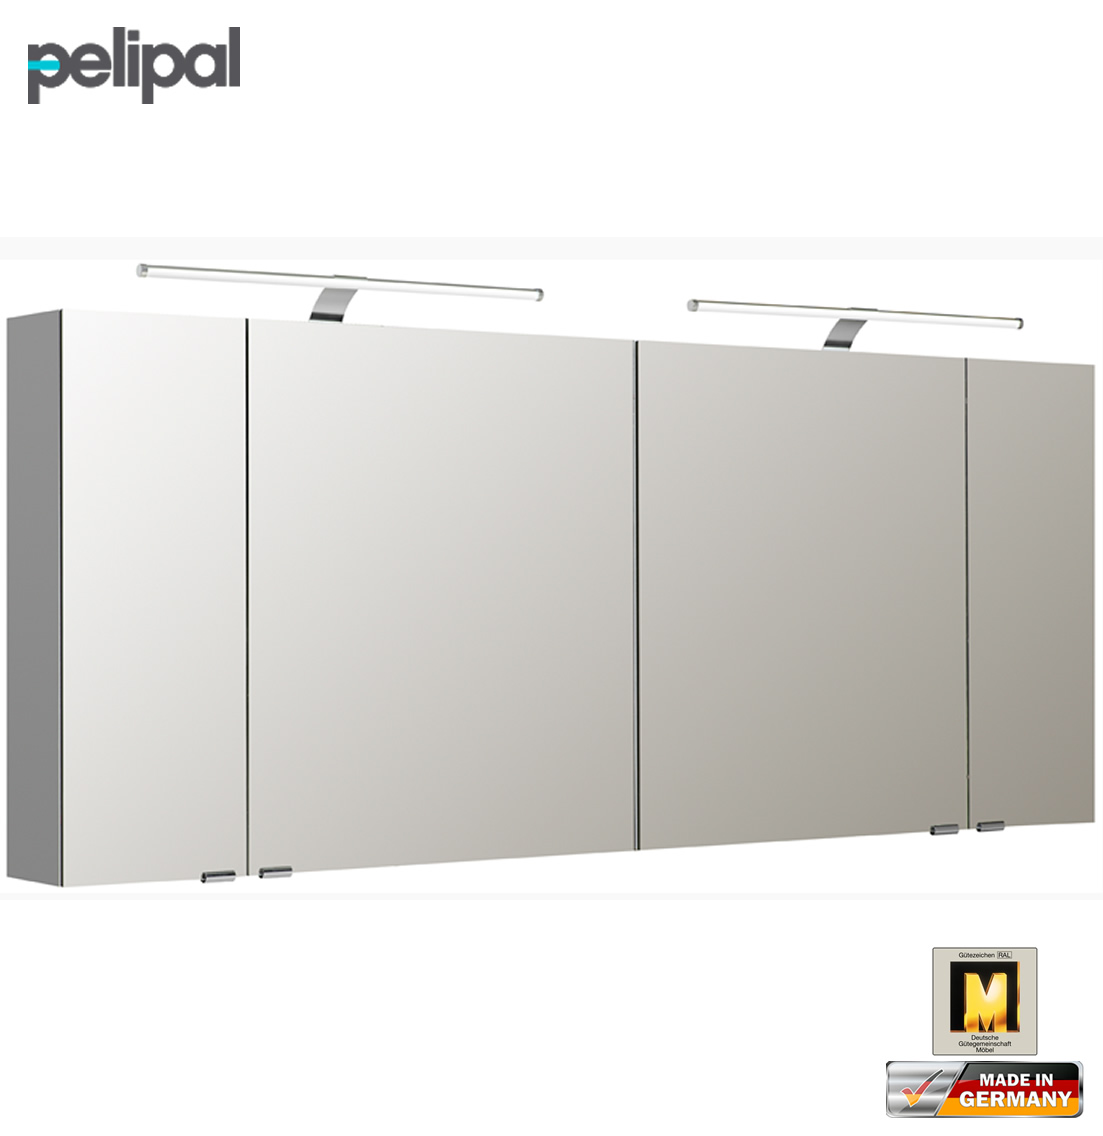 pelipal neutraler spiegelschrank 170 cm mit led aufsatzleuchten s5 spsd 32 impuls home. Black Bedroom Furniture Sets. Home Design Ideas